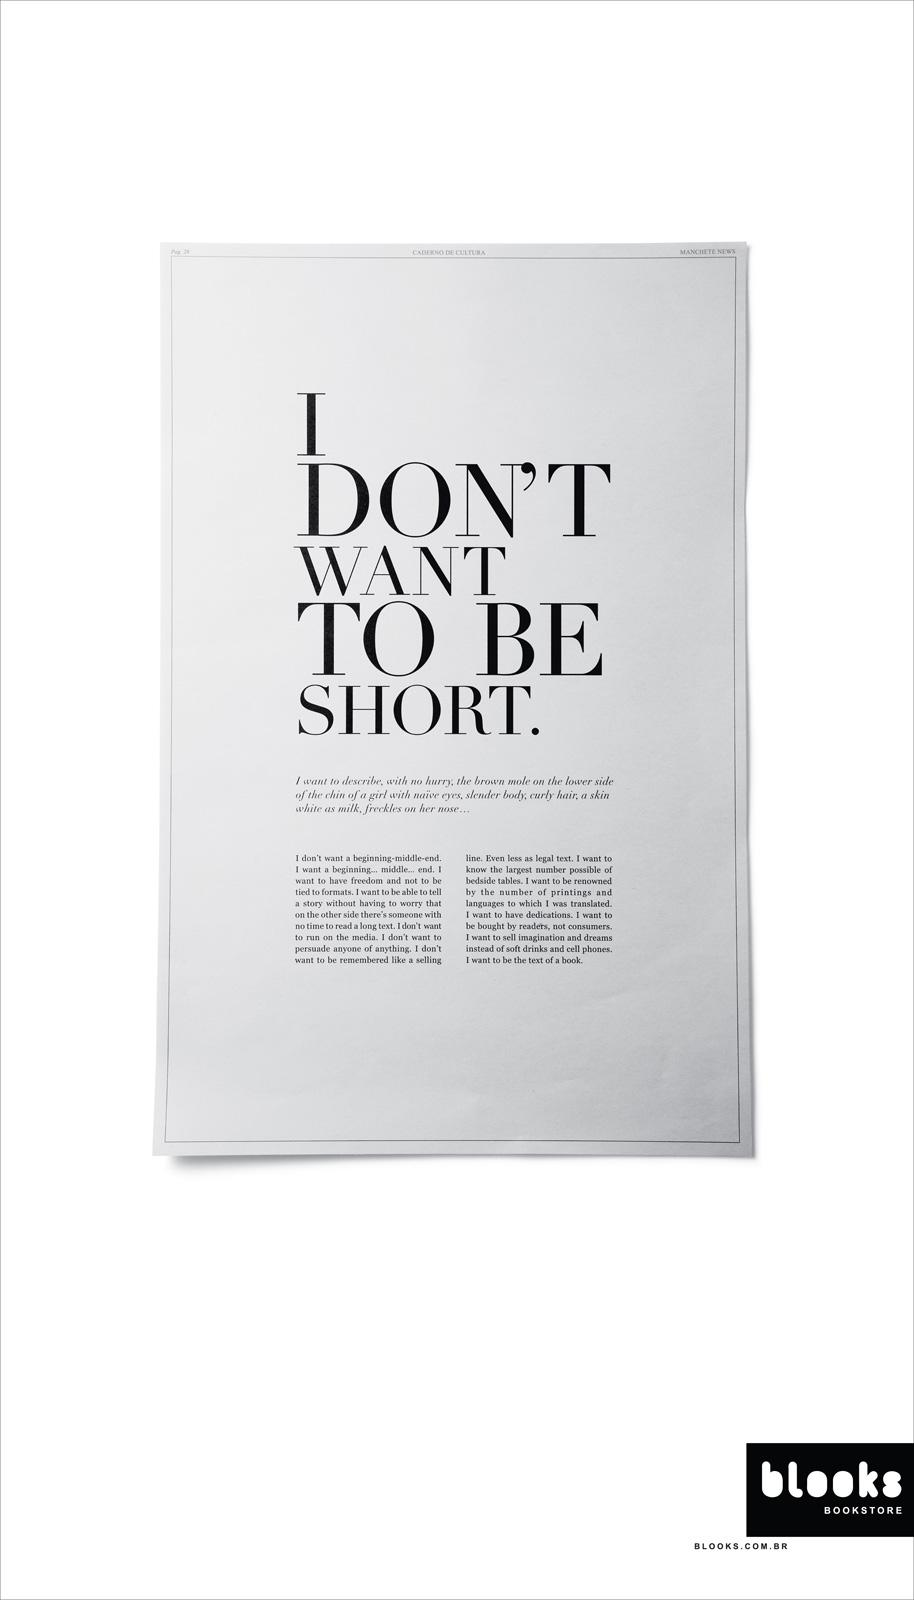 Blooks Bookstore Outdoor Ad -  I want to be the text of a book, 3